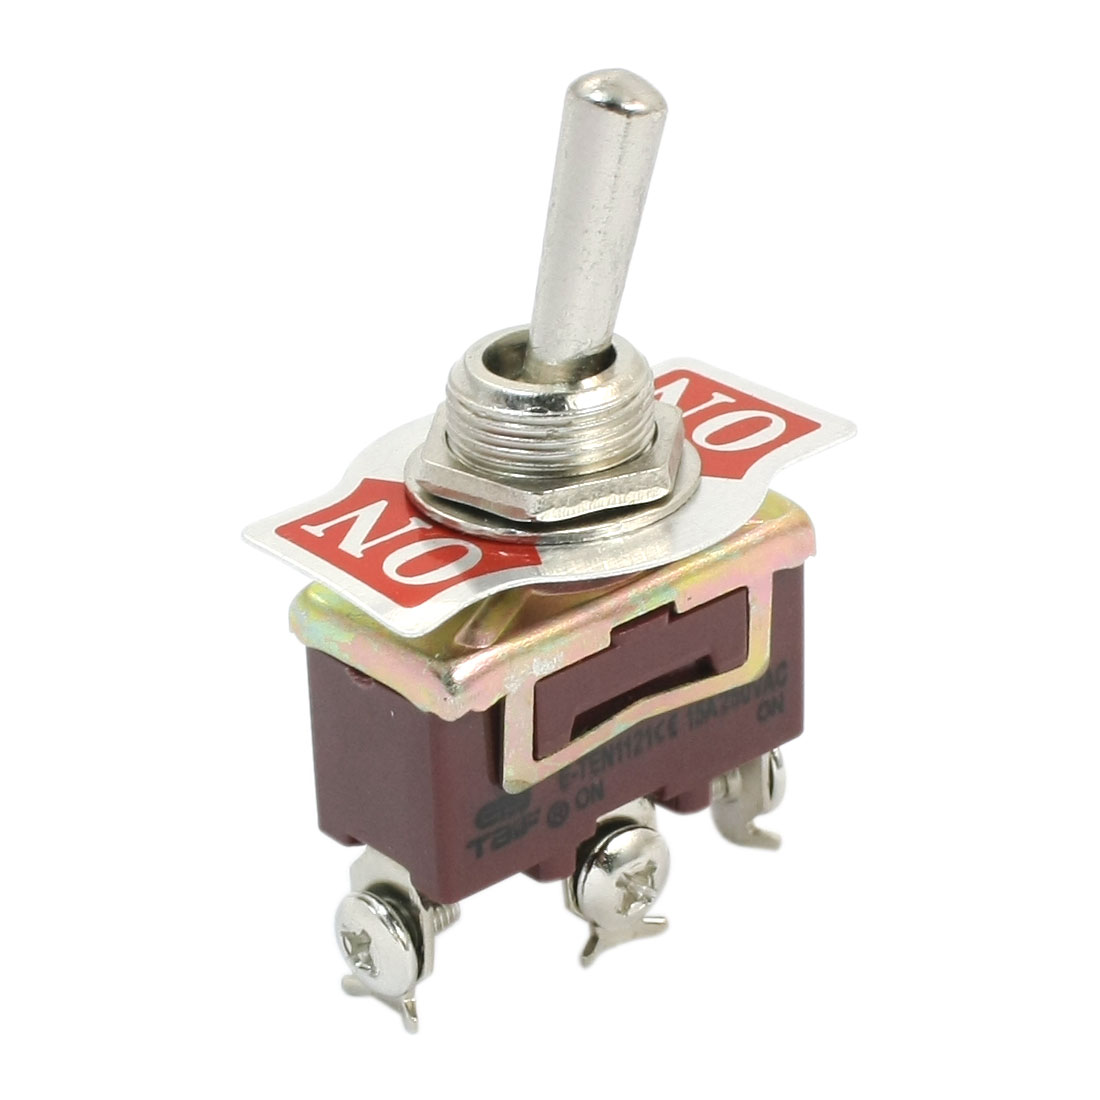 ON-ON SPDT 3 Screw Terminal Rocker Type Toggle Switch AC 250V 15A E-TEN1121